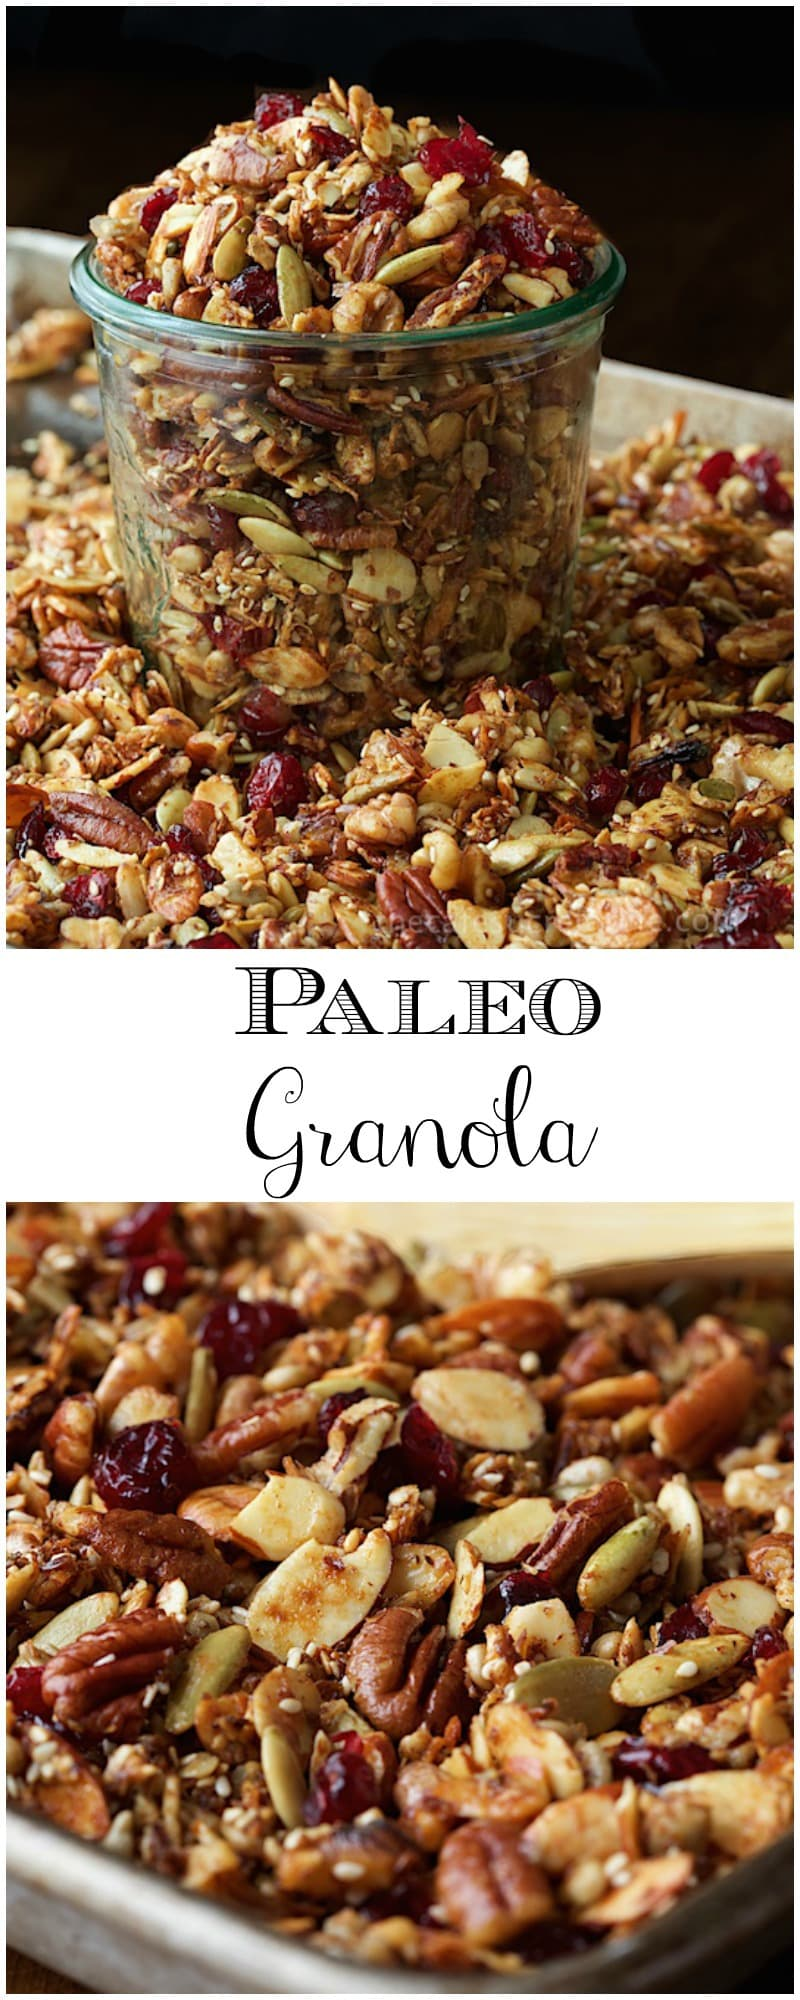 This Paleo Granola is super healthy, crazy delicious and you won't believe how easy it is to throw together!